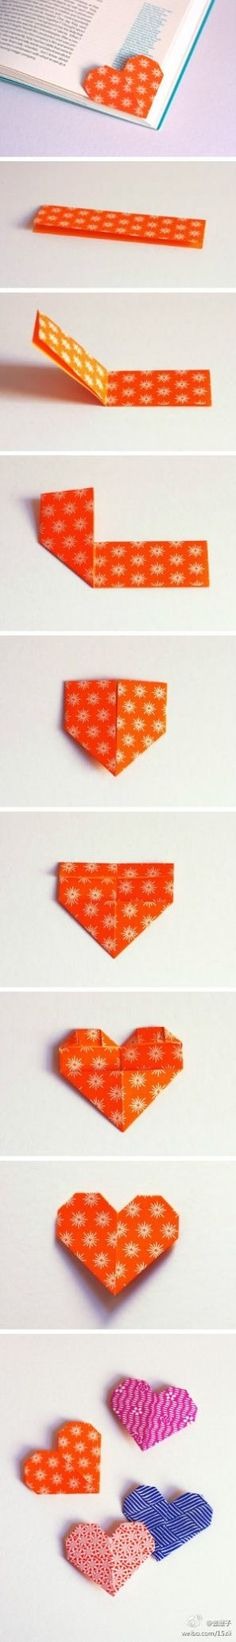 How to Make an Origami Bookmark by howaboutorange via saifou http://howaboutorange.blogspot.com/2013/01/heart-shaped-page-marker-origami.htm #DIY #Origami #Bookmark #Heart